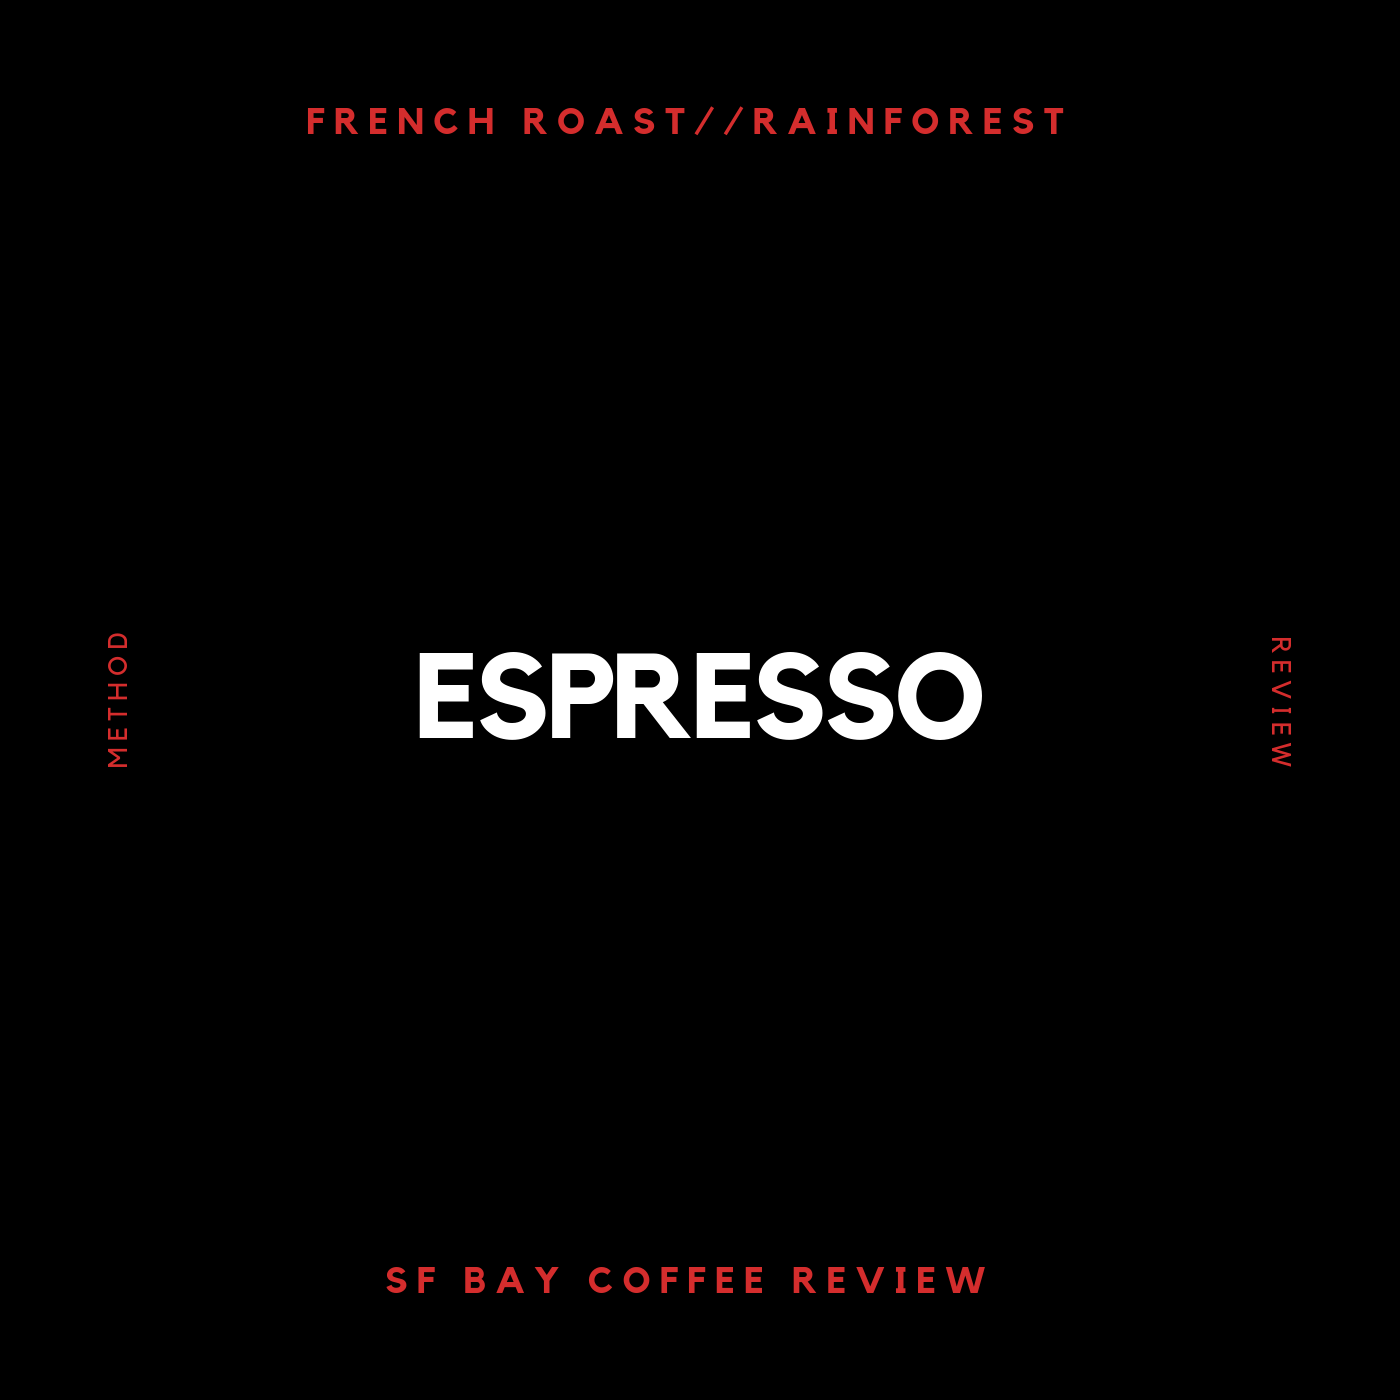 french press Review (1).png